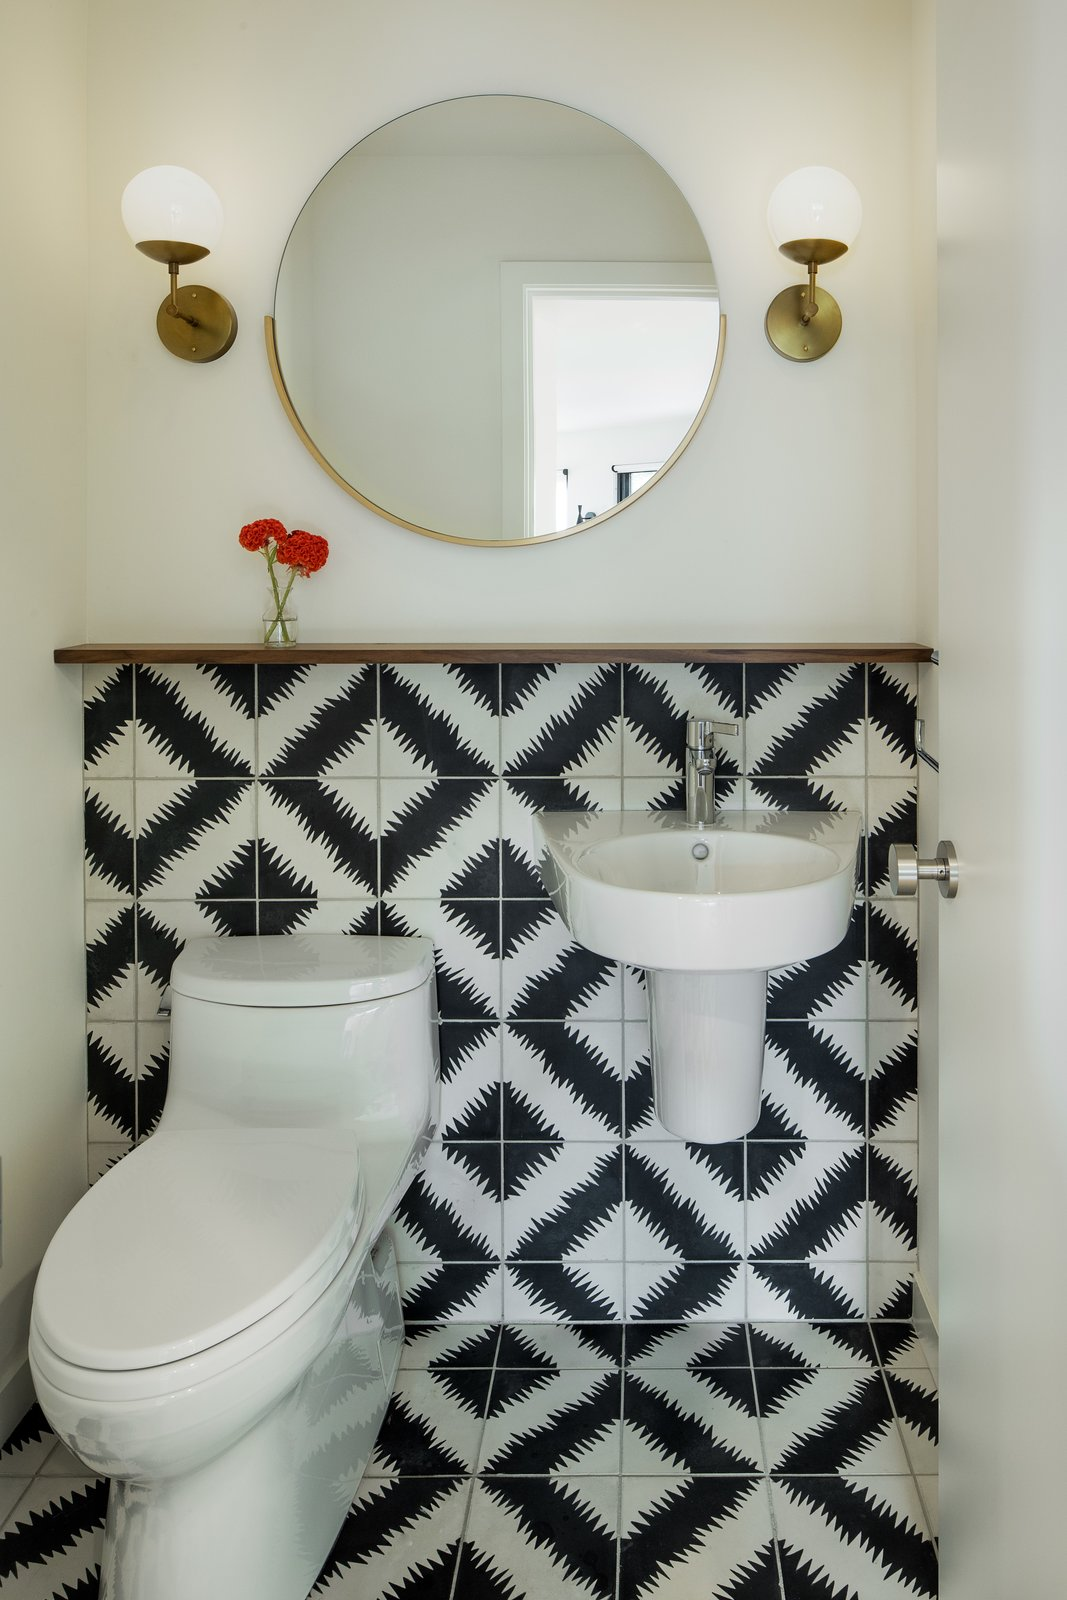 photo 10 of 12 in bath cement tile wall